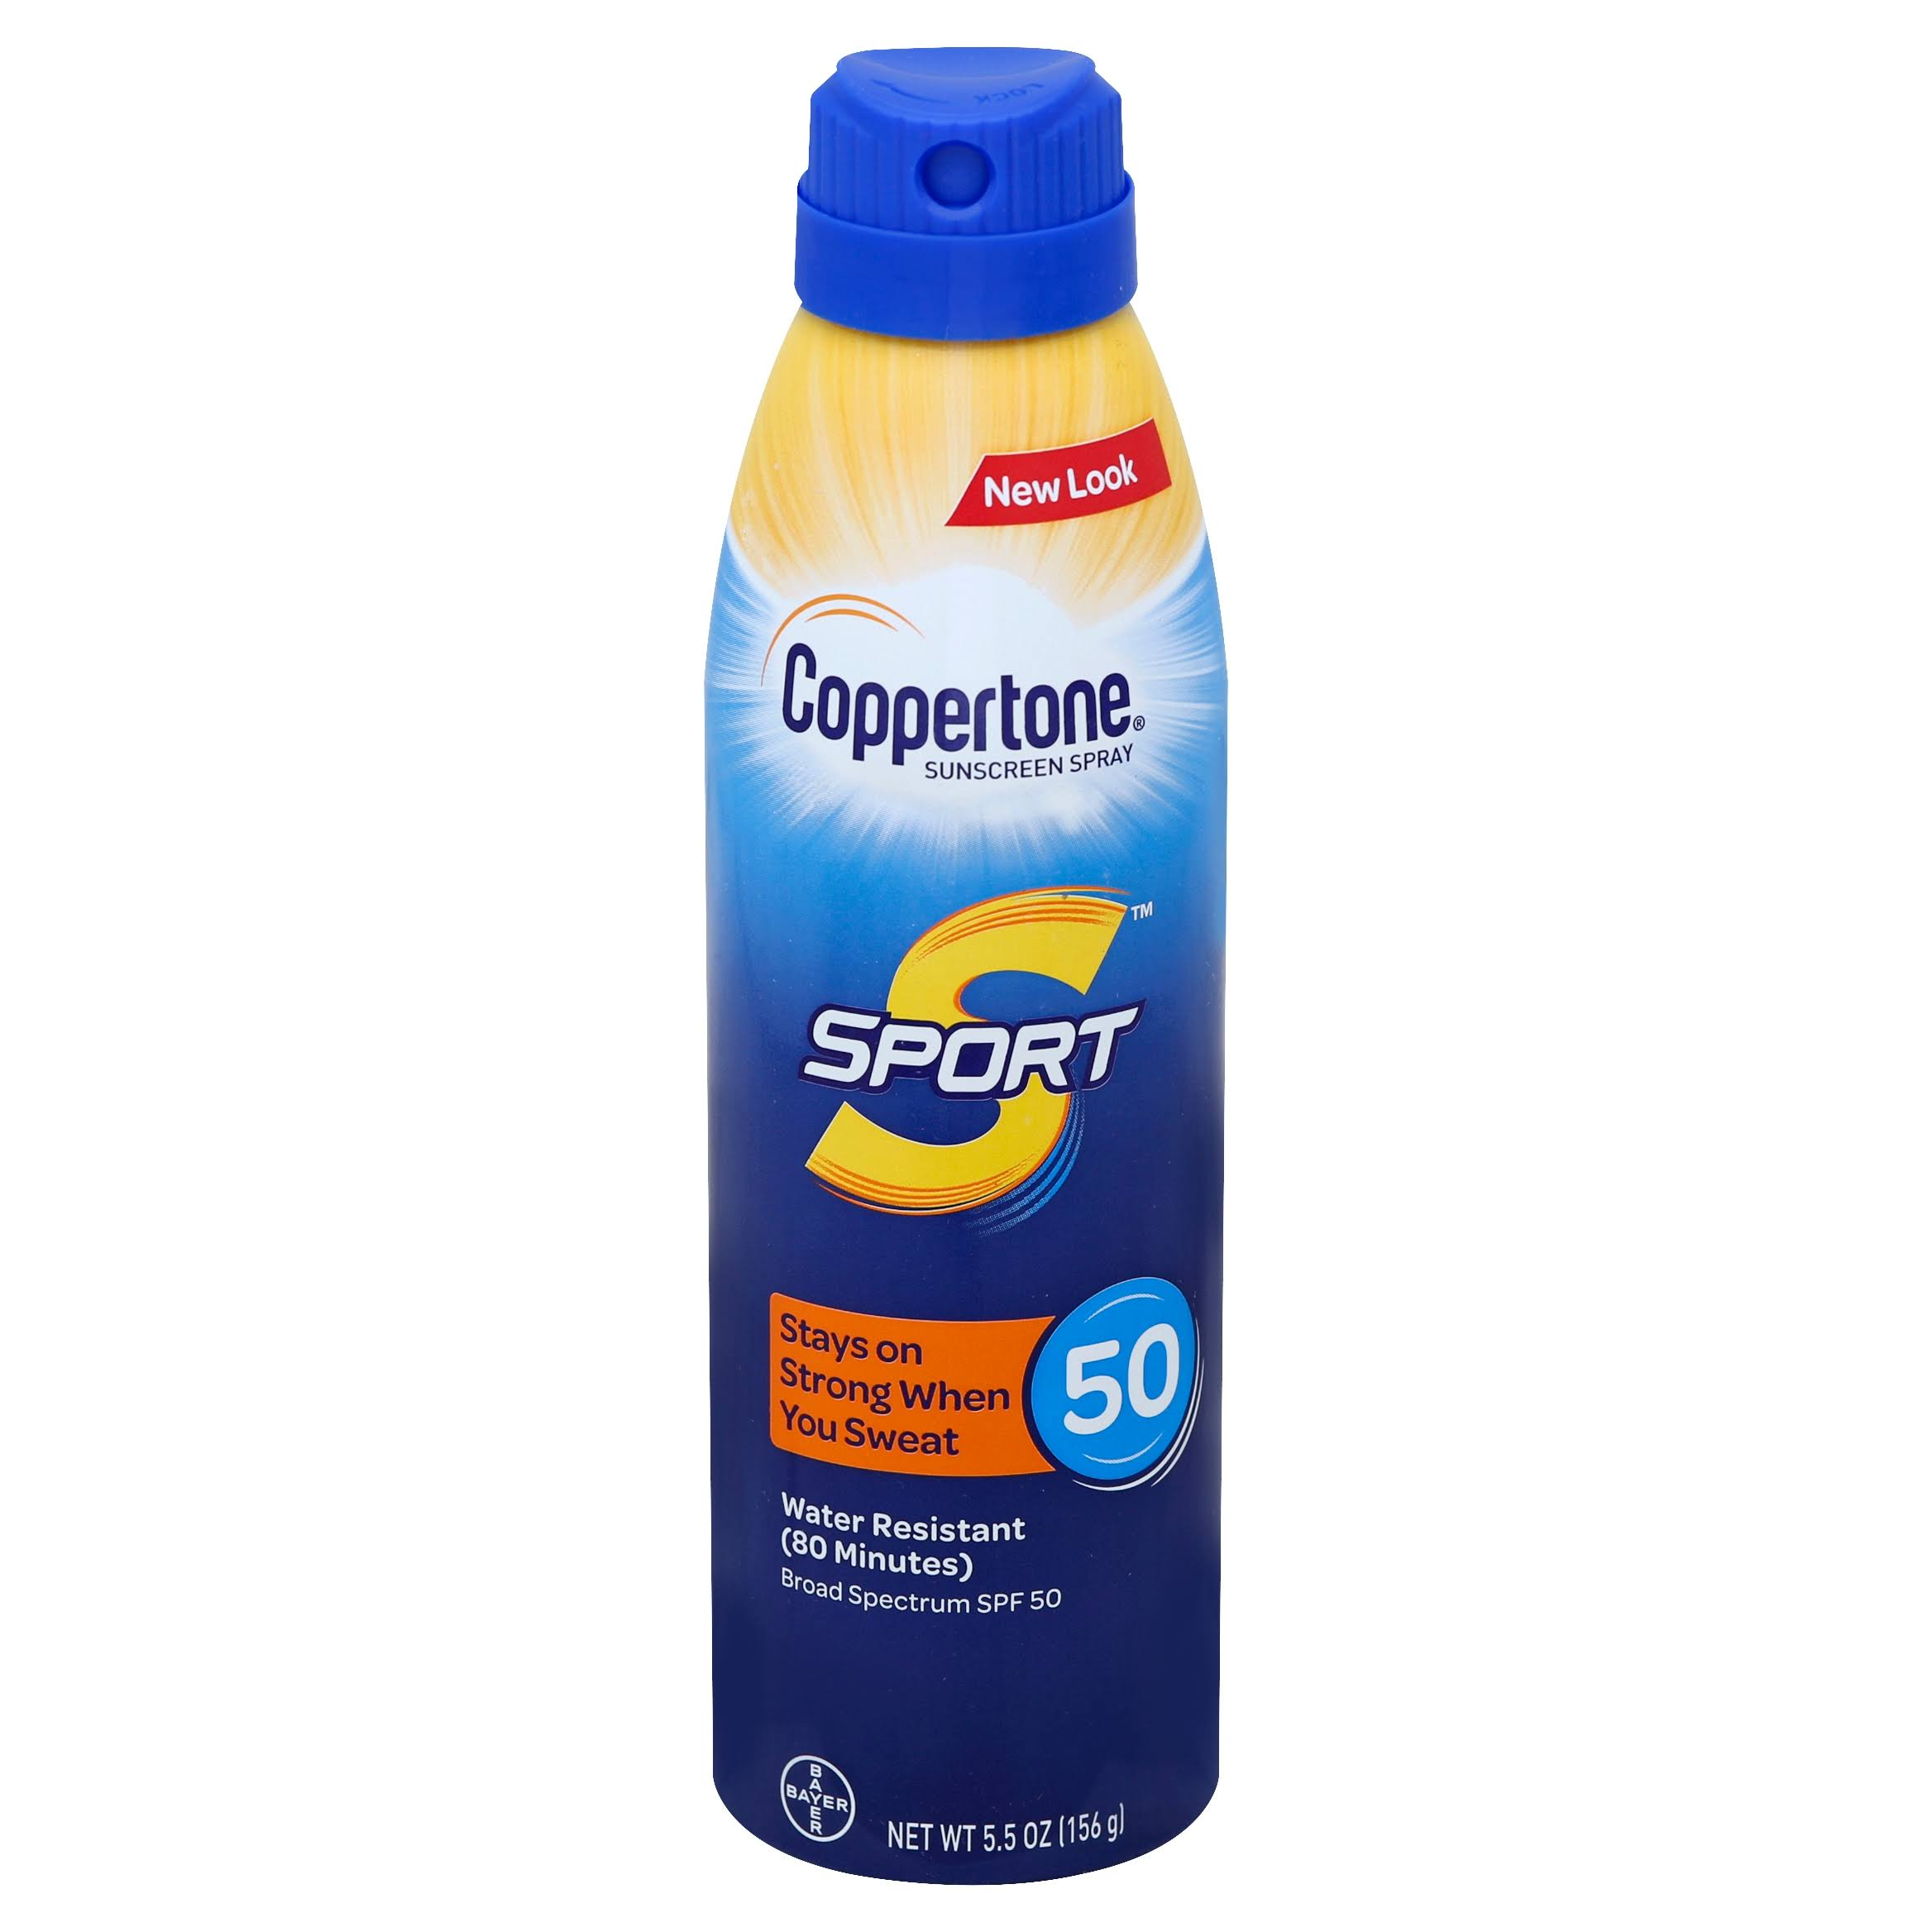 Coppertone Sunscreen Sport SPF 50 Spray - 5.5oz